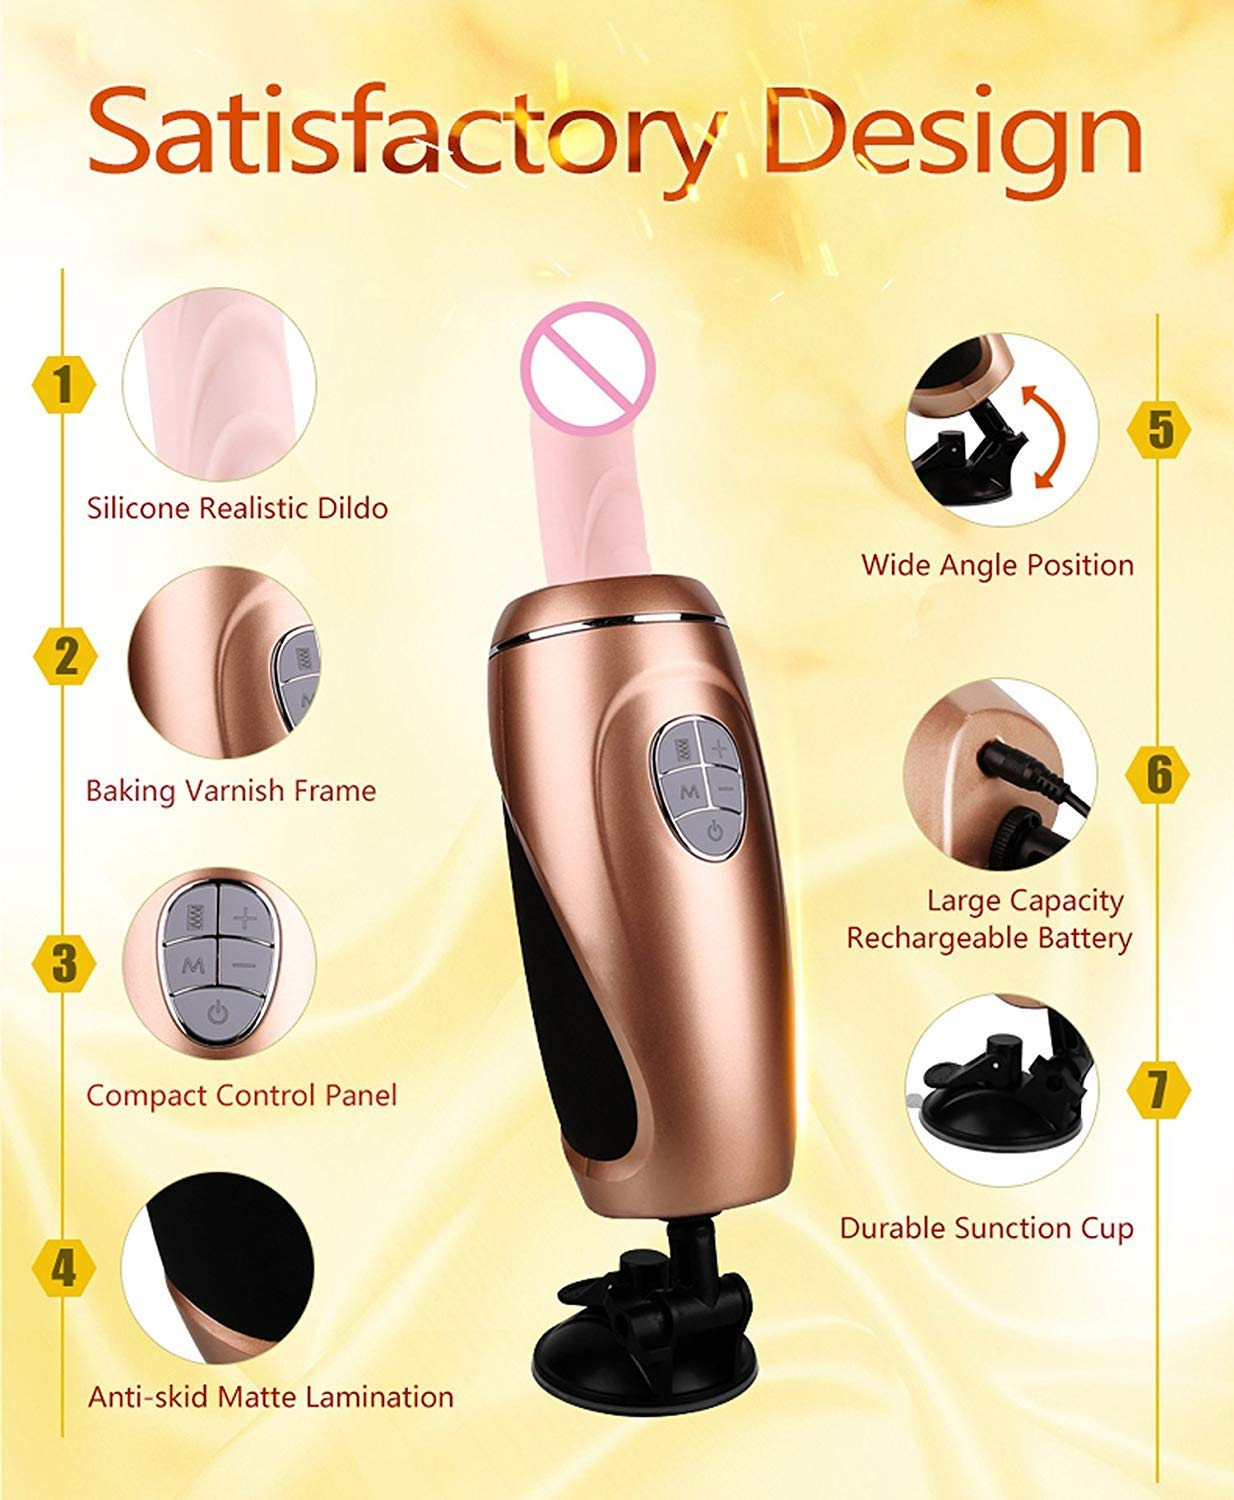 USEXMTY S-Tshirt Adult Toys ORGAT Remote Control Sex Machine Gun Automatic Thrusting P-énis Vibrator Suction Cup Female Masturbation Adult Seeex-Toys for Woman,Gold Cleverly by USEXMTY S-Tshirt (Image #6)